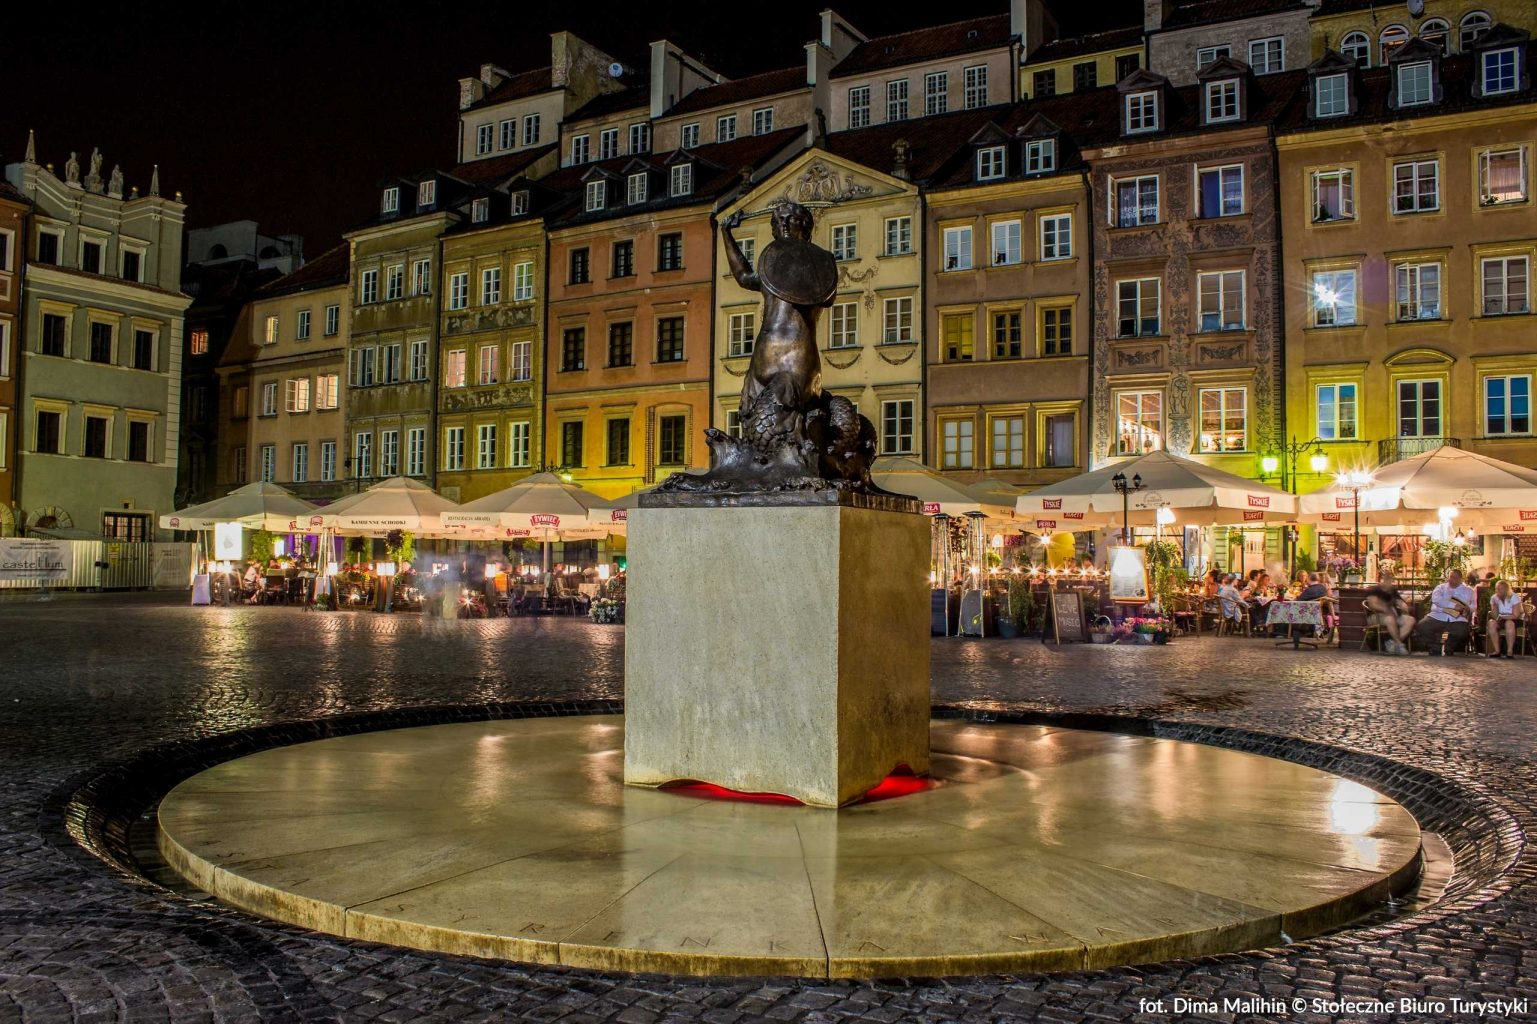 mermaid on the old market square in warsaw